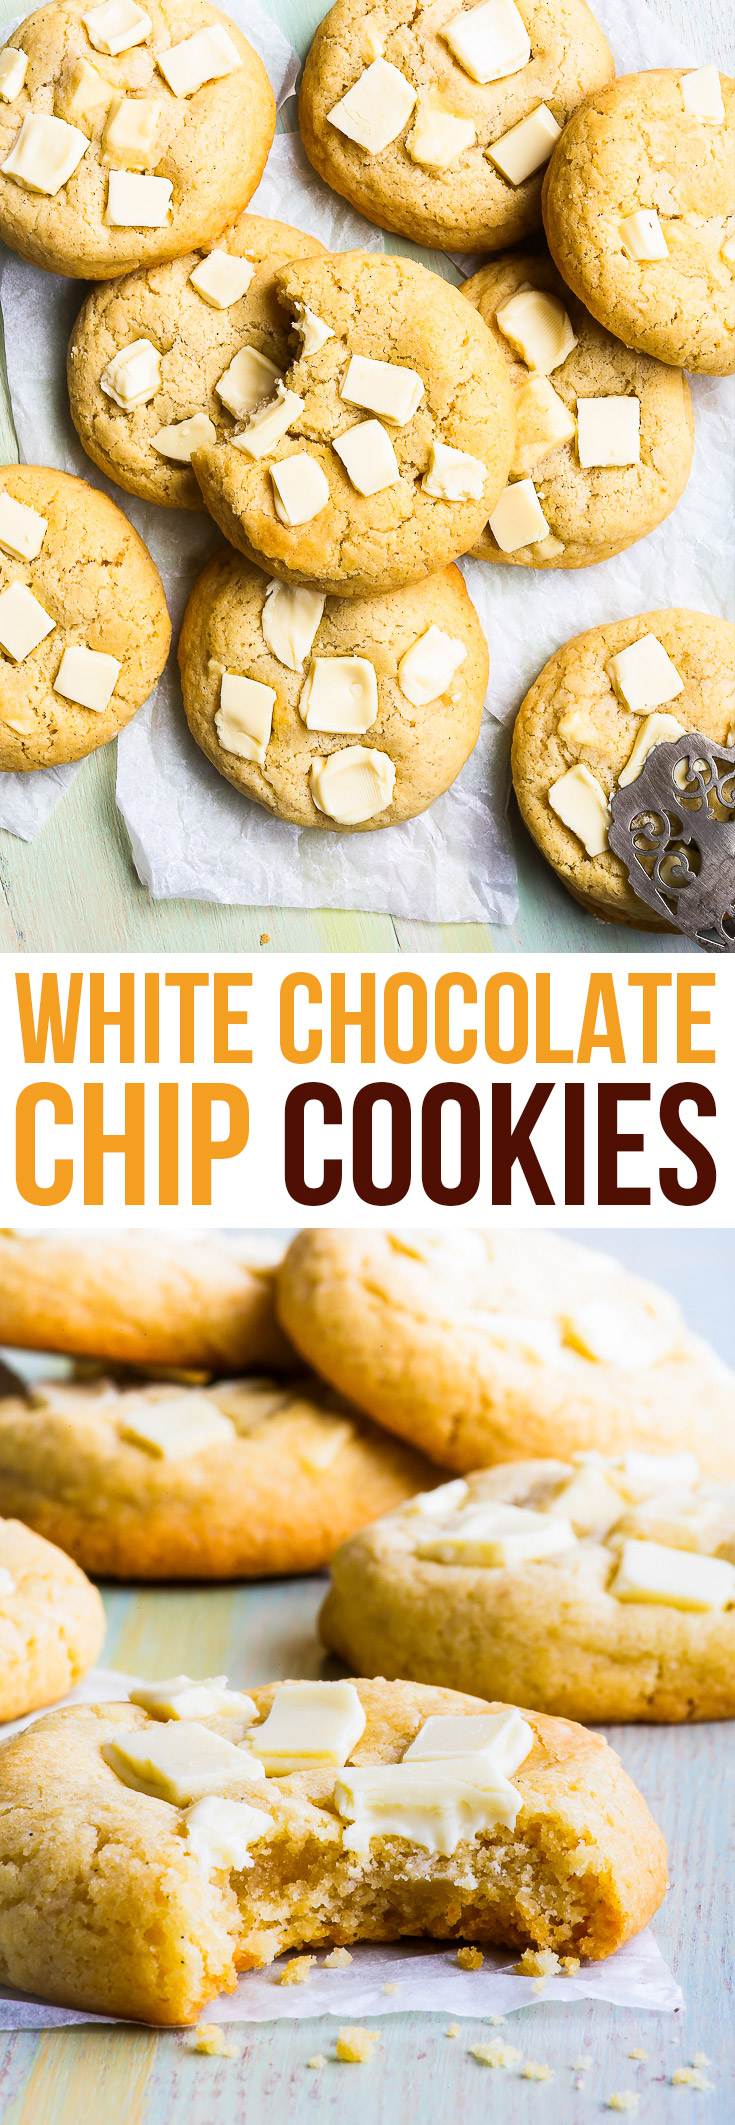 Gluten Free White Chocolate Chip Cookies {gluten, soy & nut free} - You will LOVE these gluten free white chocolate chip cookies. With a chewy, gooey buttery centre and crispy, caramelised edges, they simply couldn't be more delicious. A super easy chocolate chip cookie recipe, perfect as an edible DIY gift! #cookies #glutenfree #chocolate